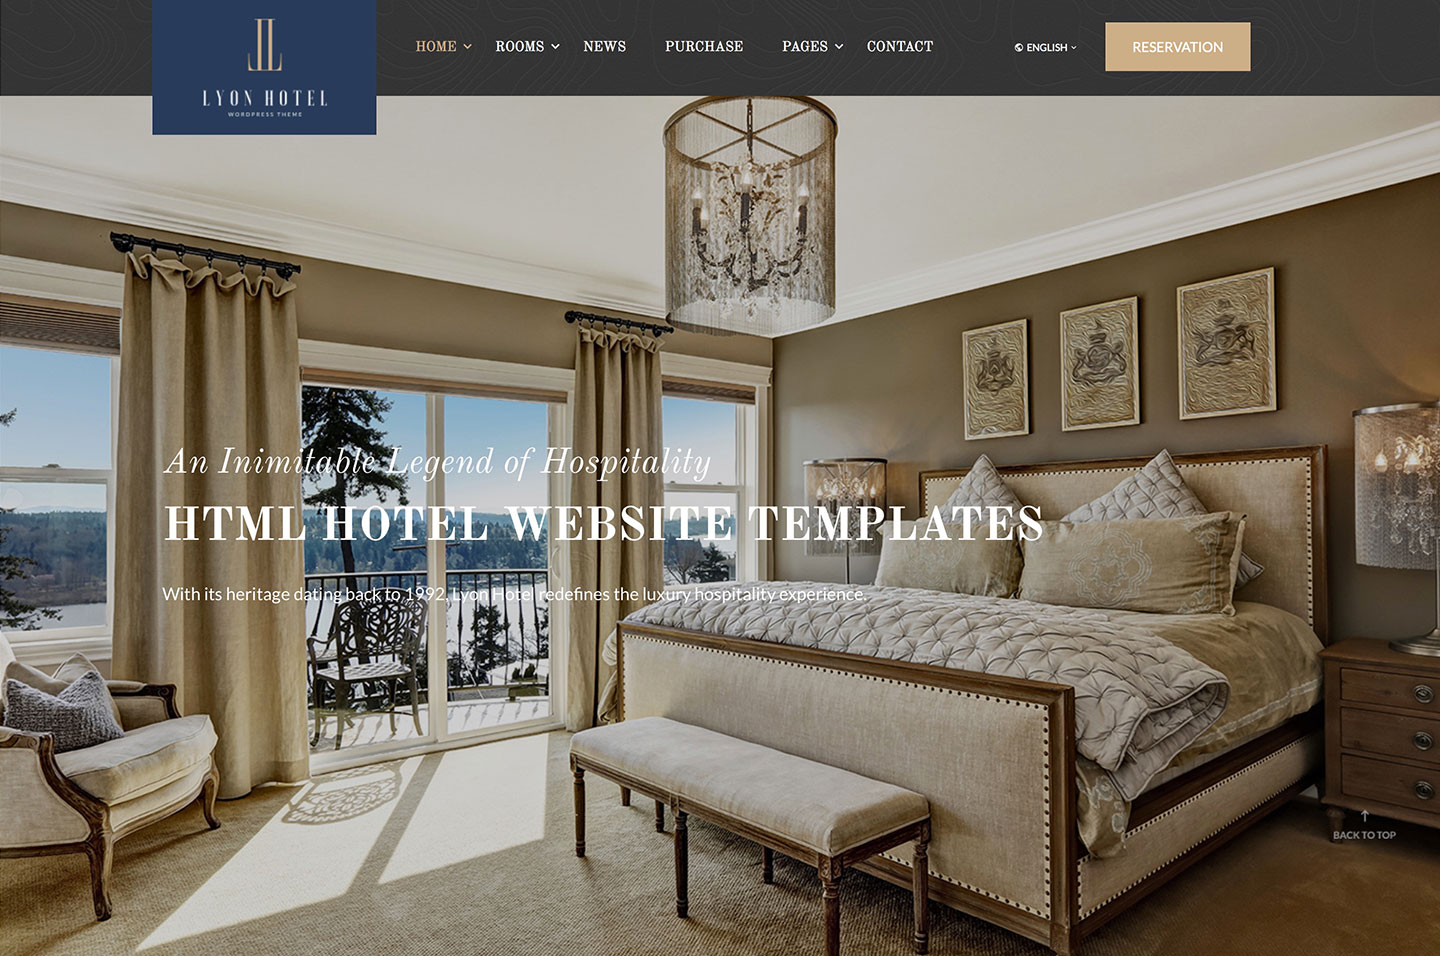 Top 15 HTML5 Hotel Website Templates For Luxury Hotel, Resort And Hostel Booking Sites 2017